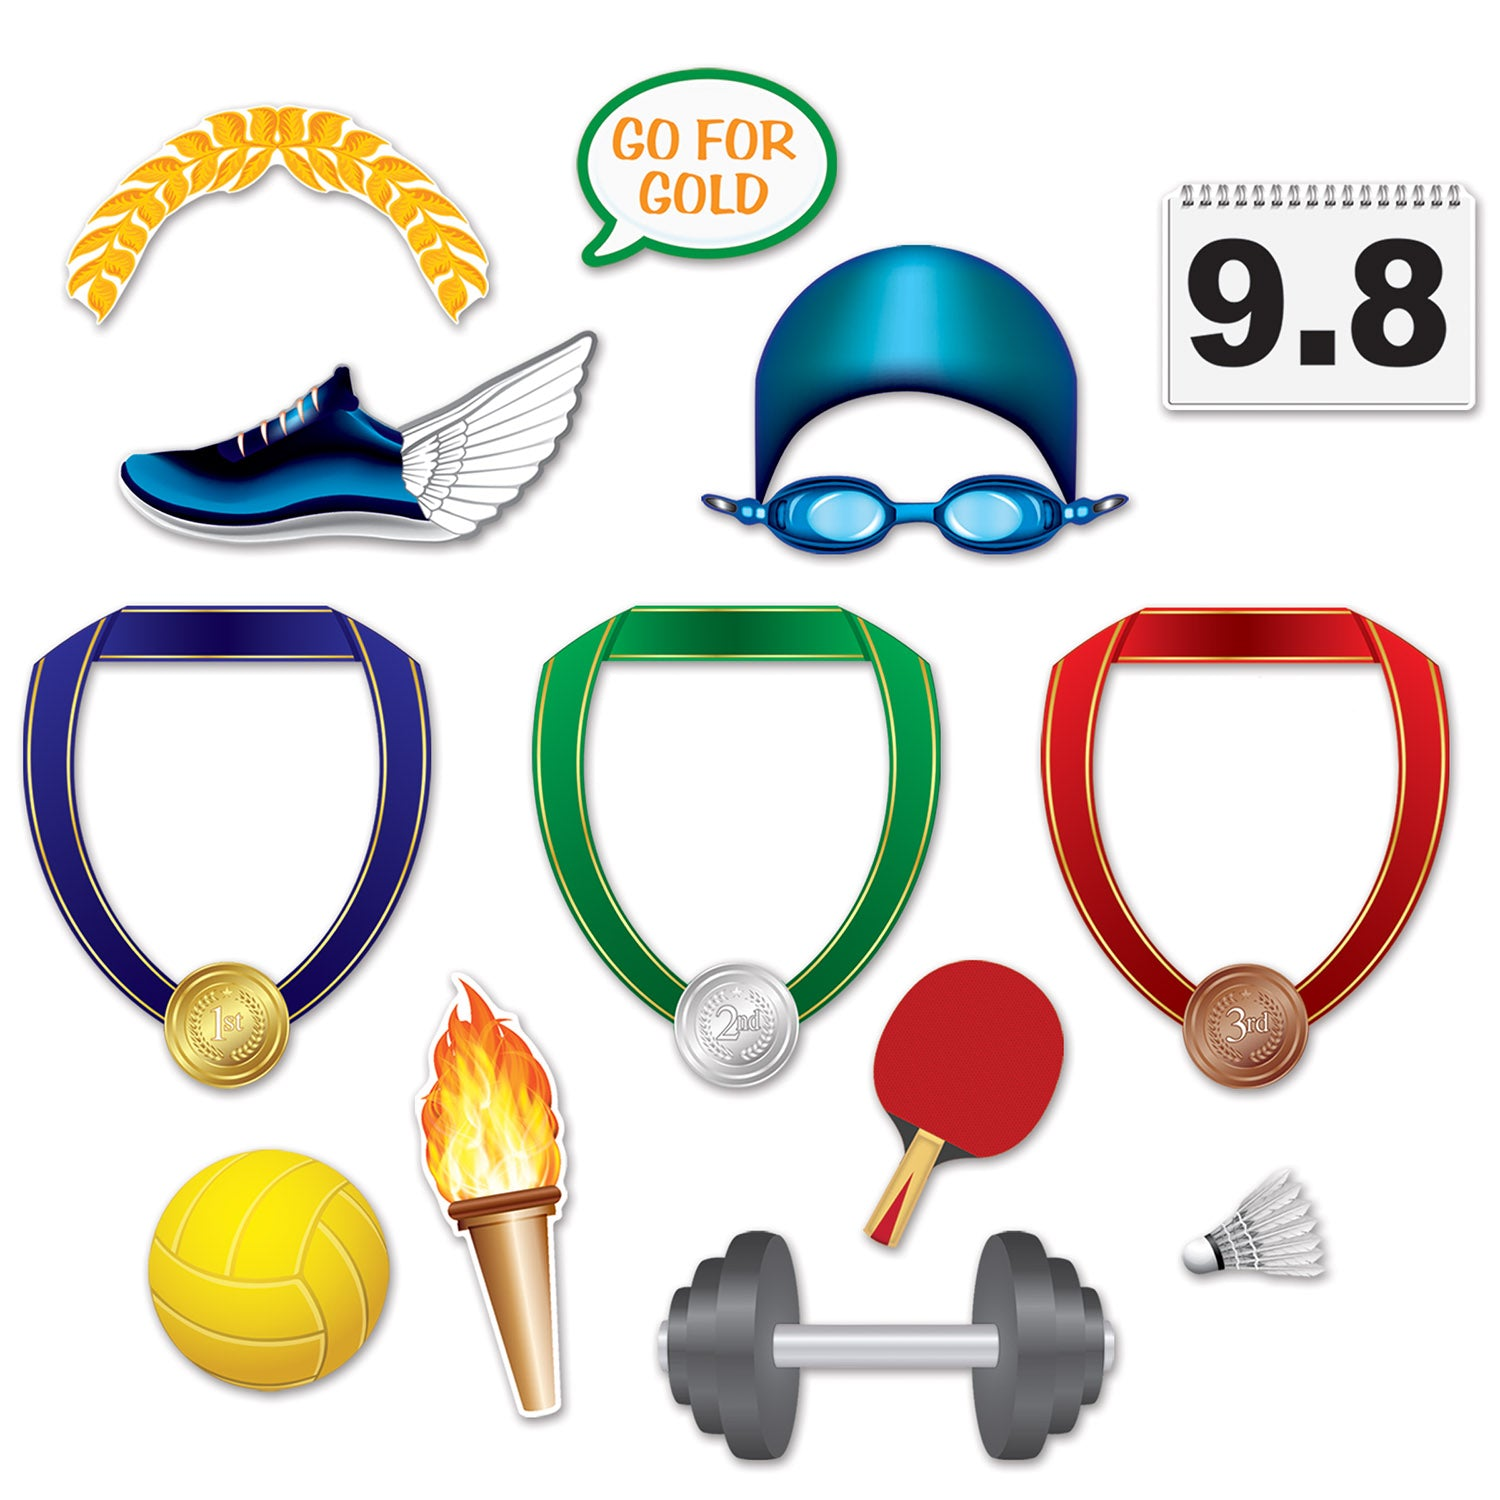 Summer Sports Photo Fun Signs (13/Pkg) by Beistle - Sports Theme Decorations